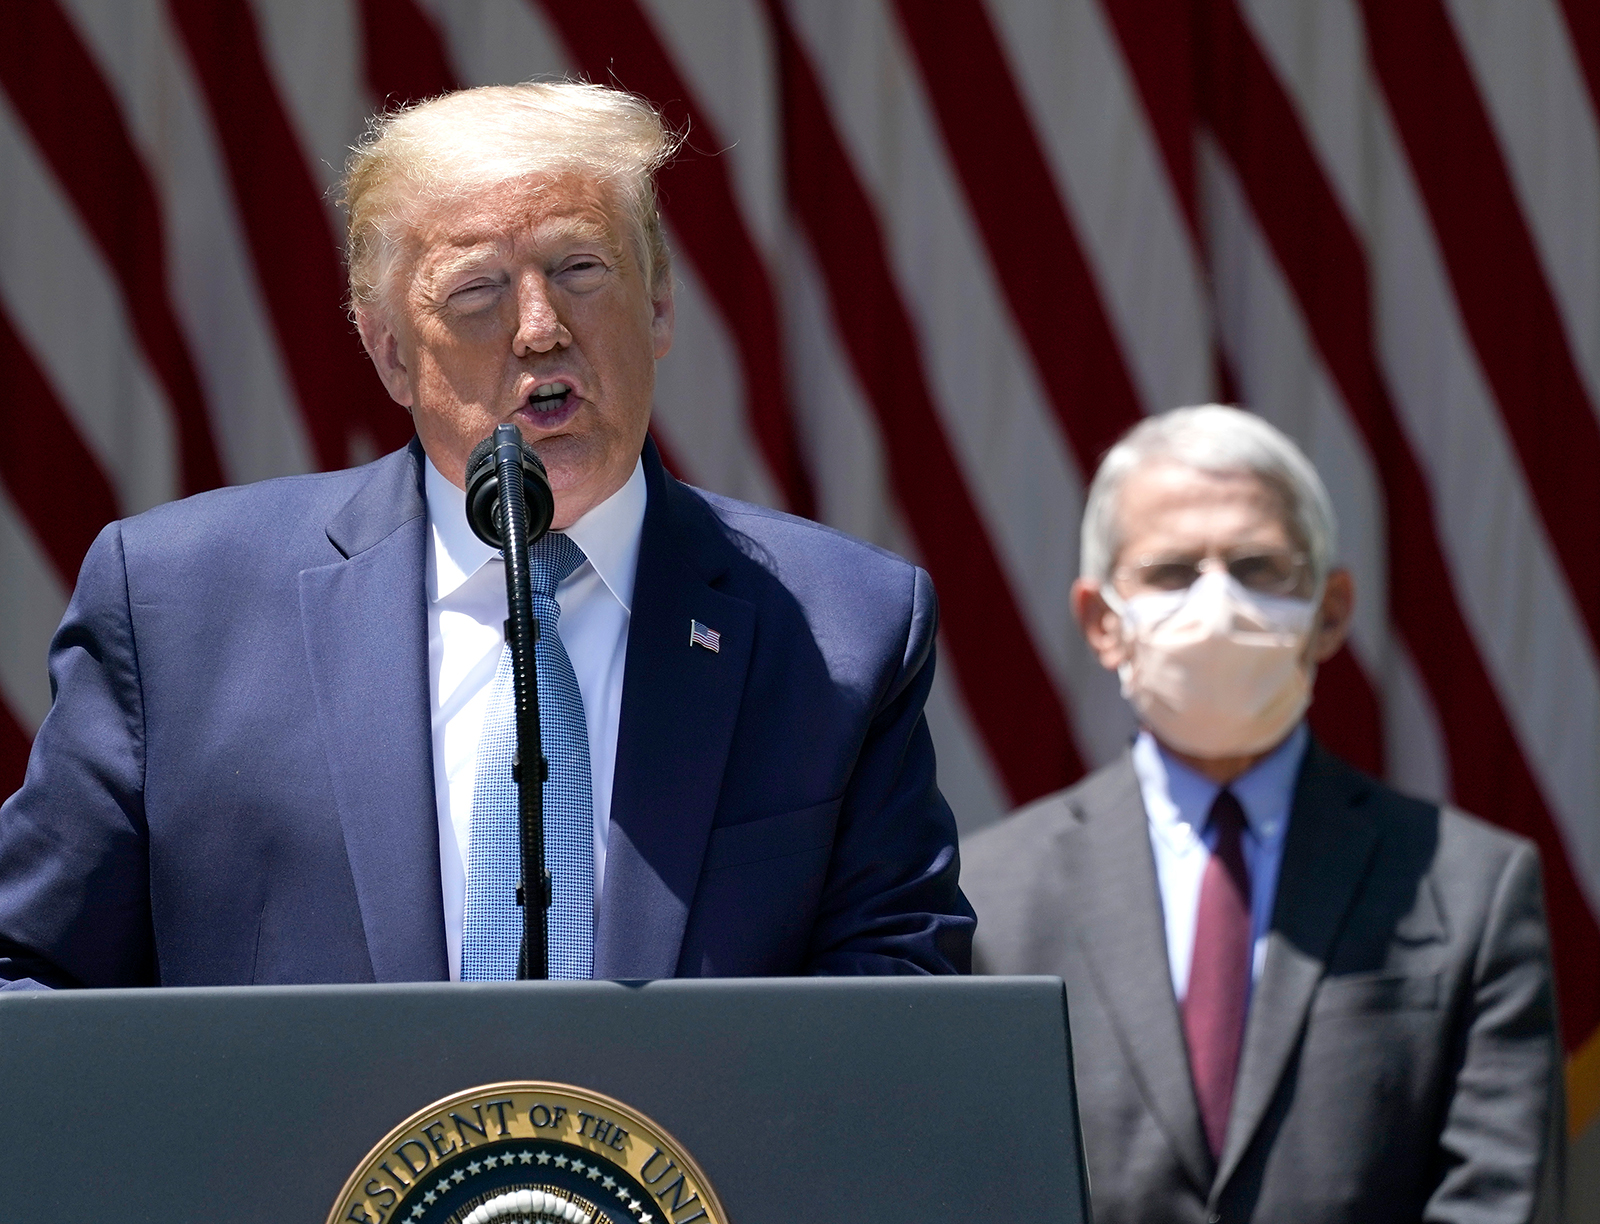 US President Donald Trump is flanked by Dr. Anthony Fauci, director of the National Institute of Allergy and Infectious Diseases while speaking about coronavirus vaccine development in the Rose Garden of the White House on May 15 in Washington.